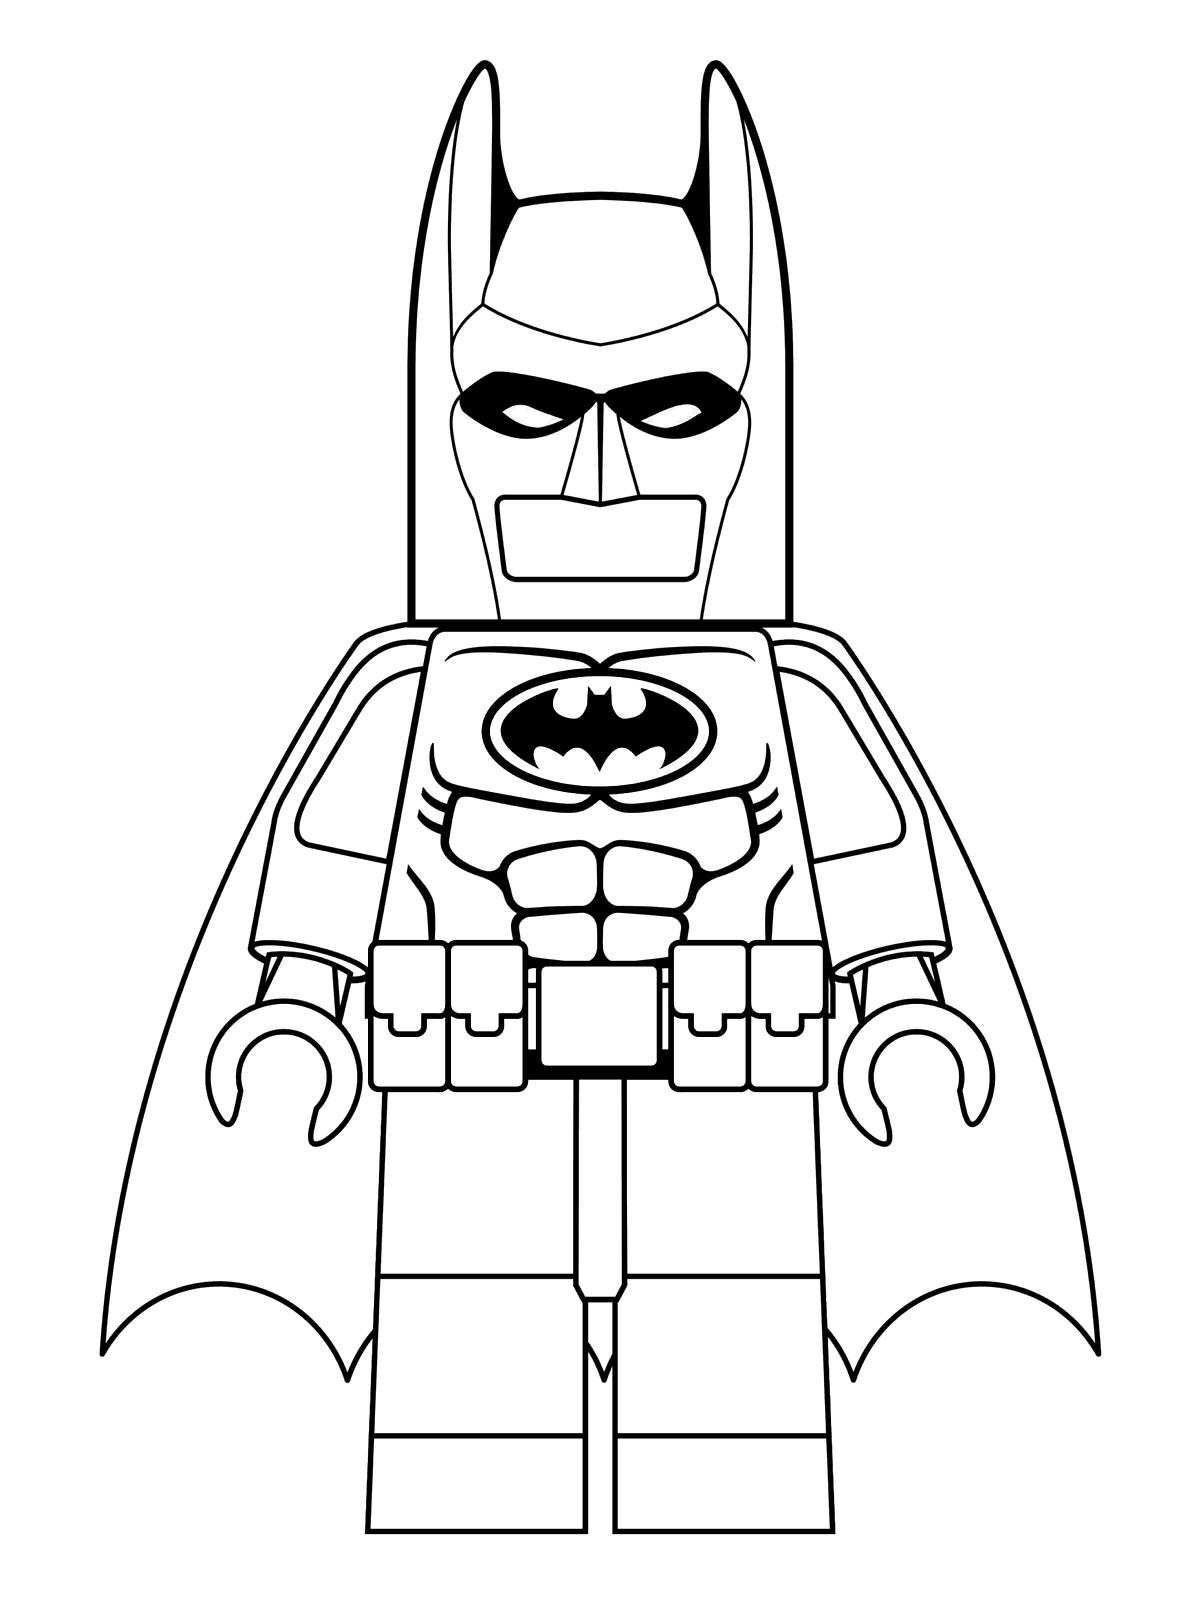 Lego Batman Coloring Book Lego Batman Coloring Pages With Images In 2020 Lego Movie Coloring Pages Lego Coloring Pages Superhero Coloring